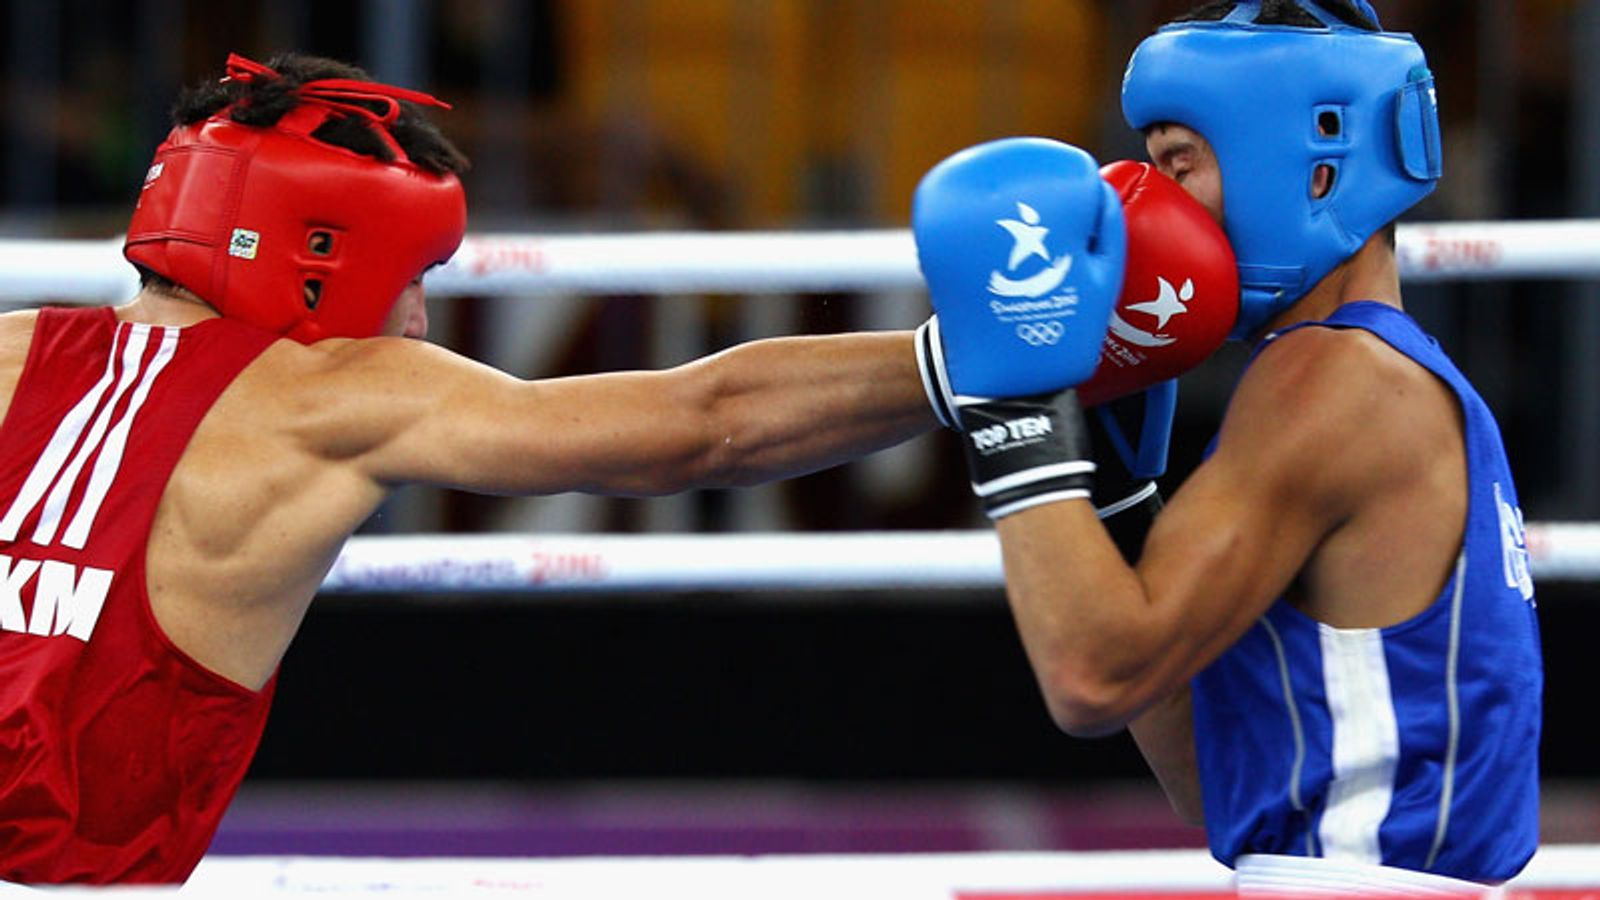 Two russian boxers competed while serving bans for doping